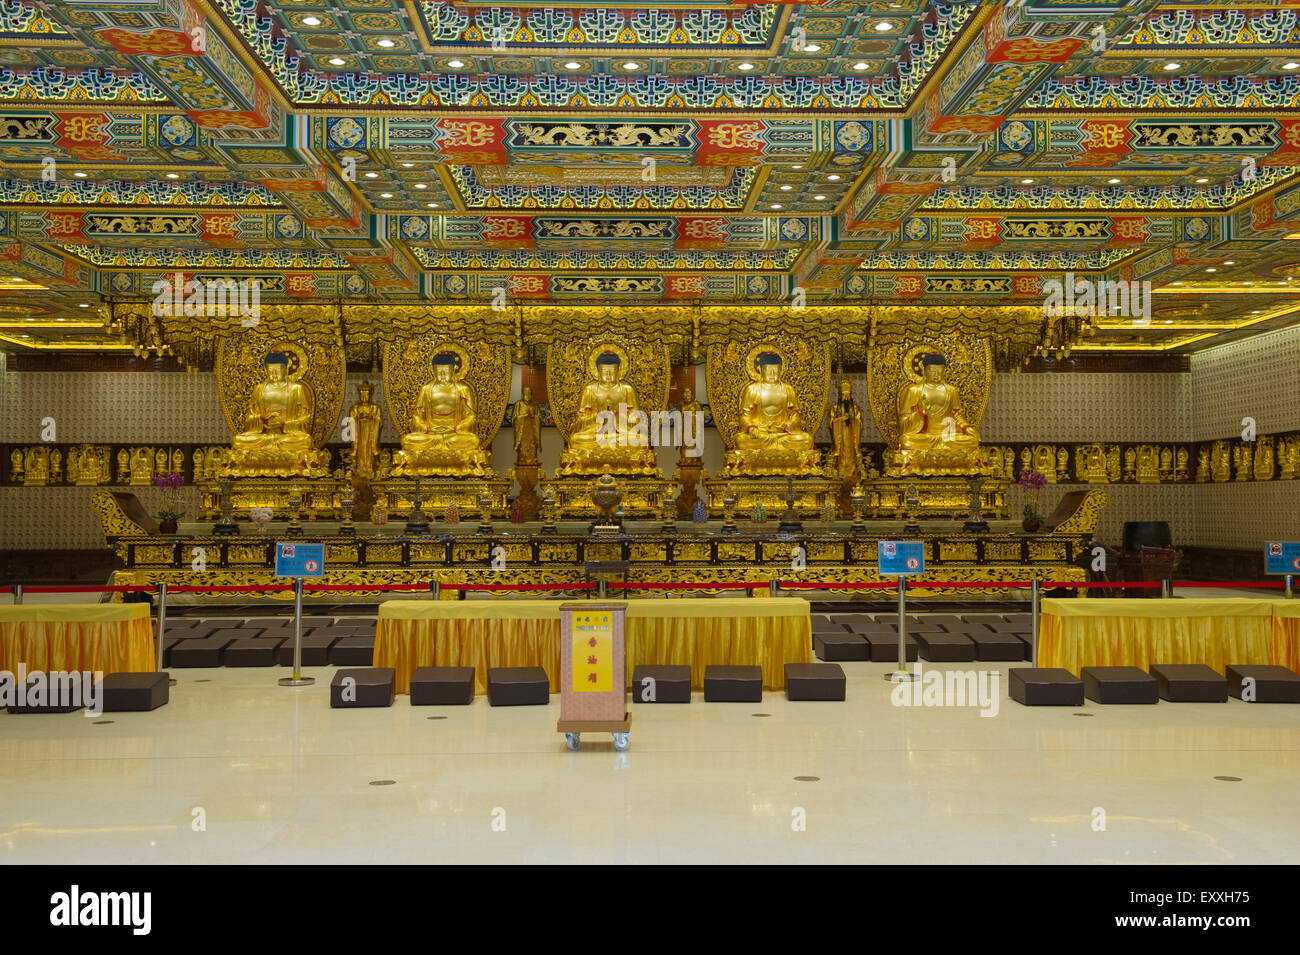 Grand Hall Of Ten Thousand Buddhas interior, Po Lin Monastery, Lantau Island Hong Kong, China - Stock Image